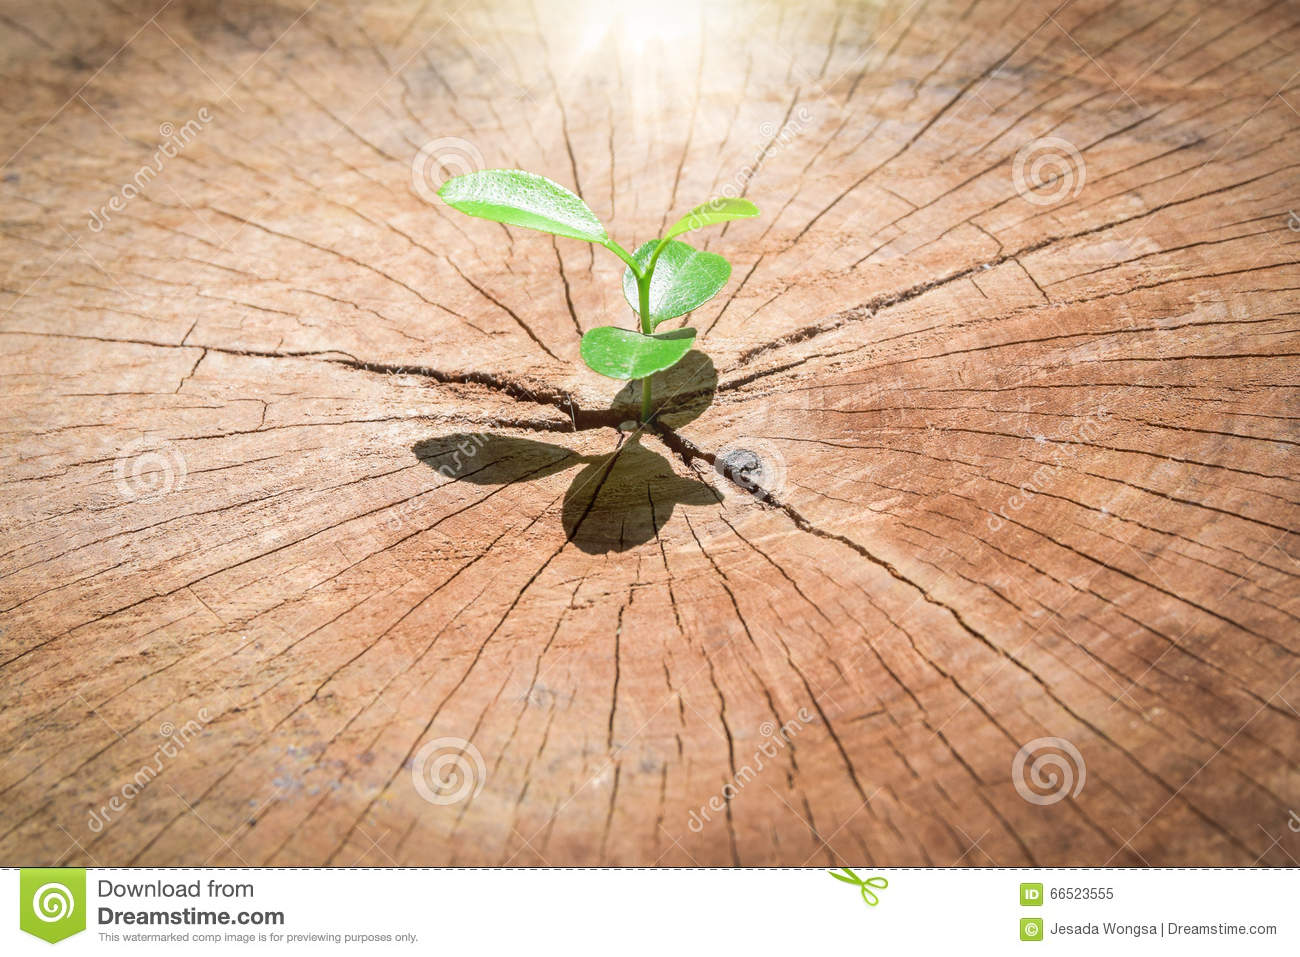 strong seedling growing in the center trunk tree as a Concept of support building a future.. (focus on new life )